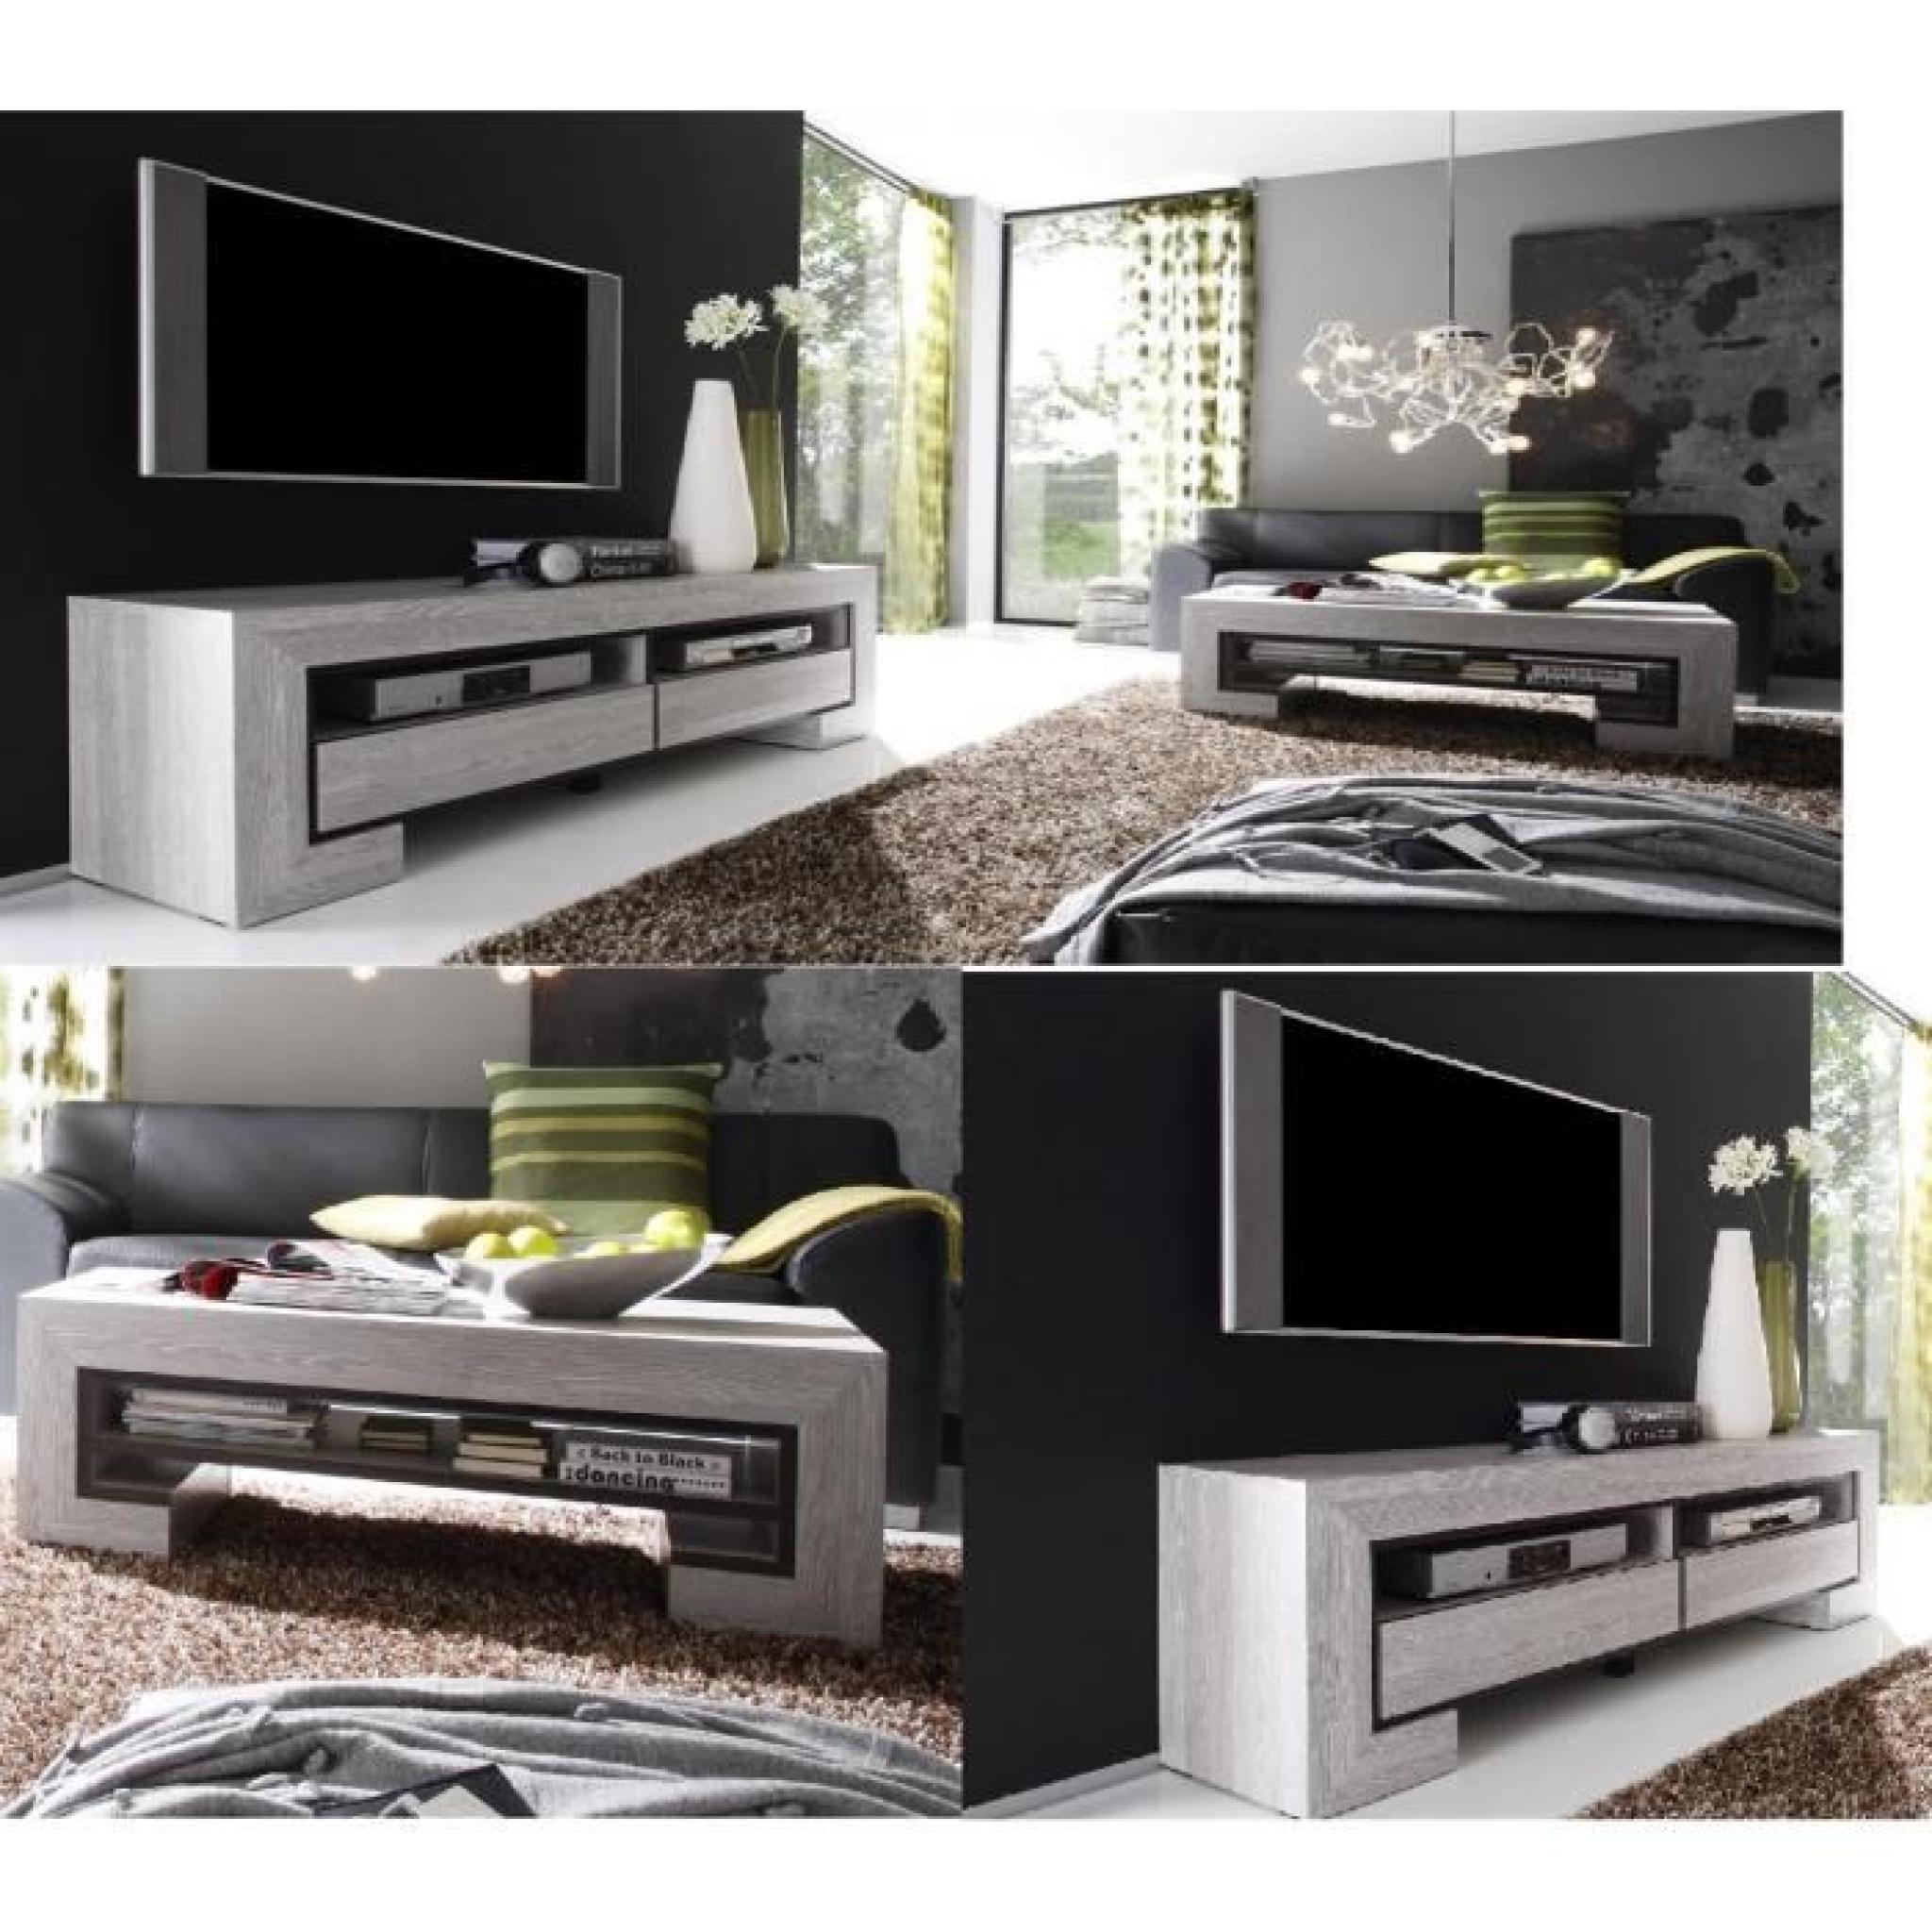 offre lot salon salle a manger 6 meubles ref cuba. Black Bedroom Furniture Sets. Home Design Ideas